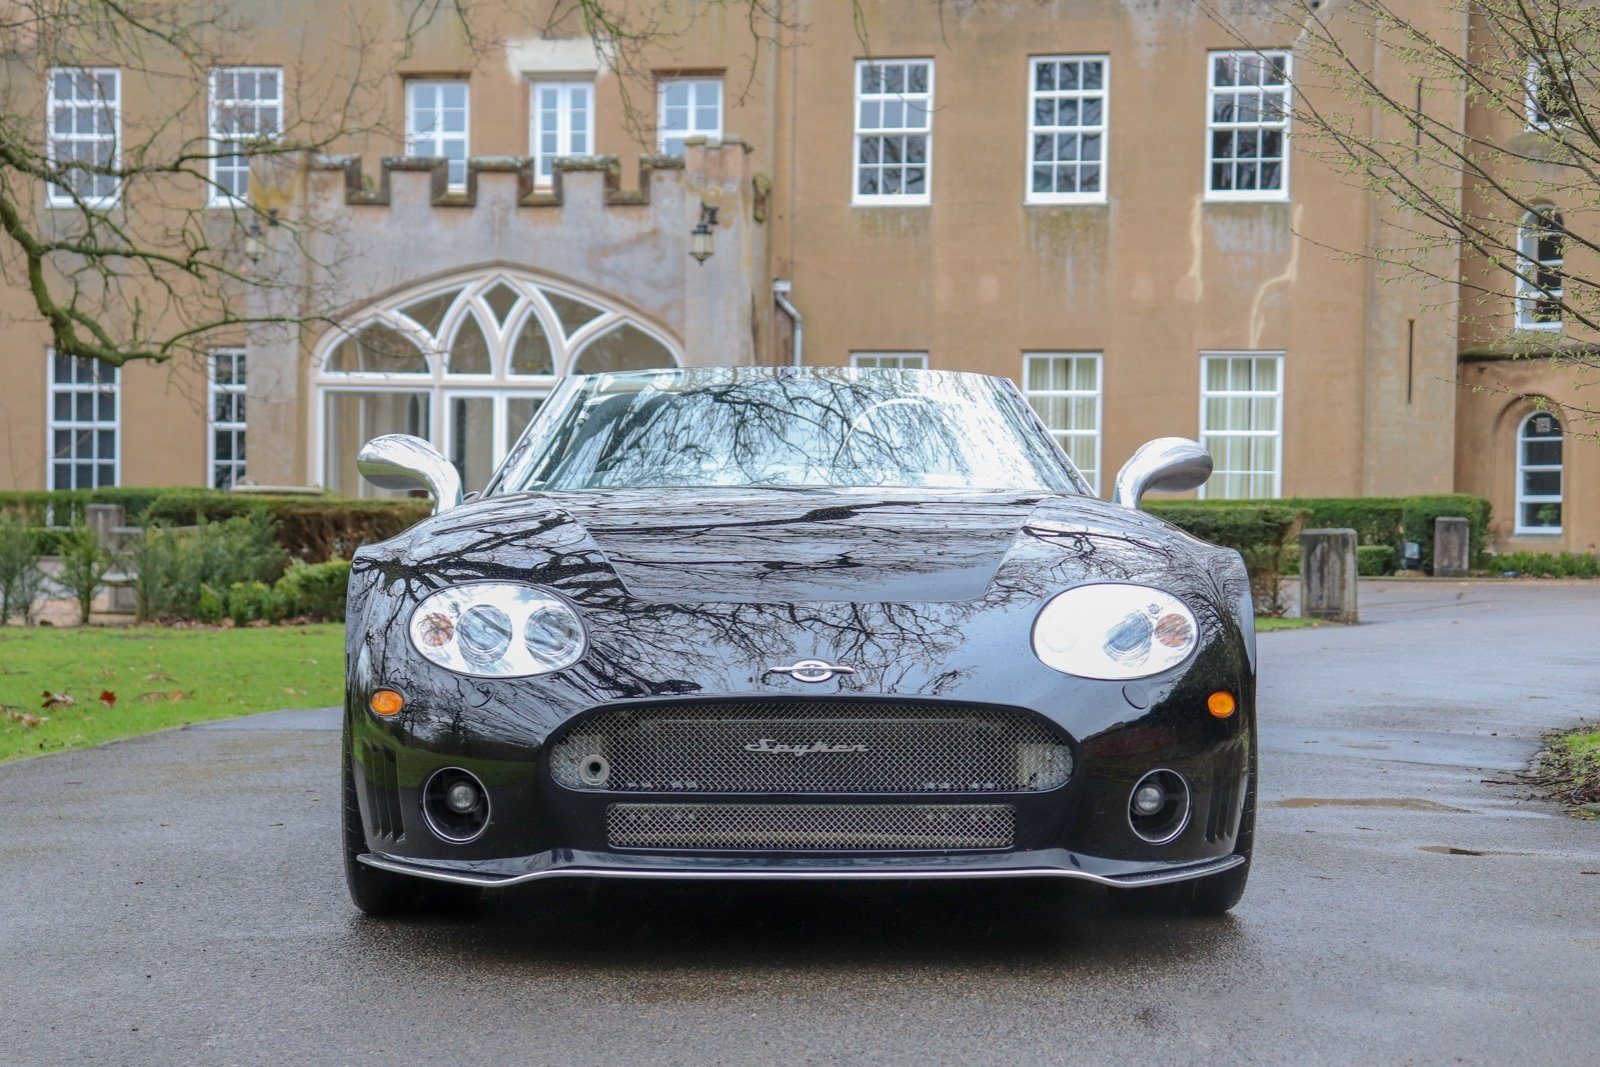 2010 Spyker C8 Spyder - Very Rare For Sale (picture 2 of 6)